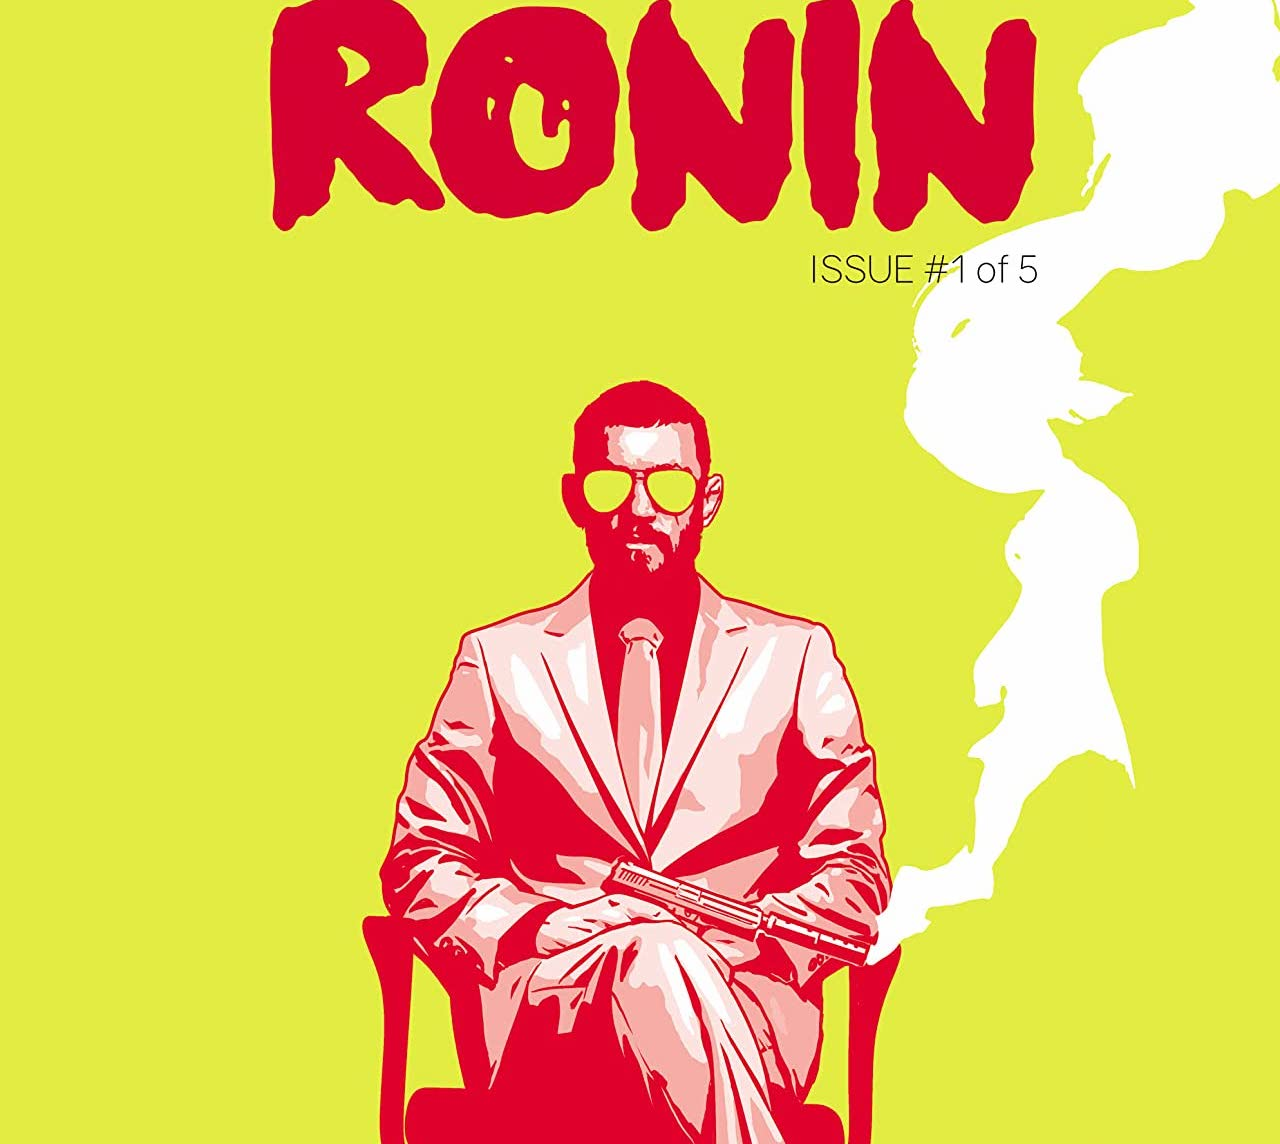 'American Ronin' #1 review